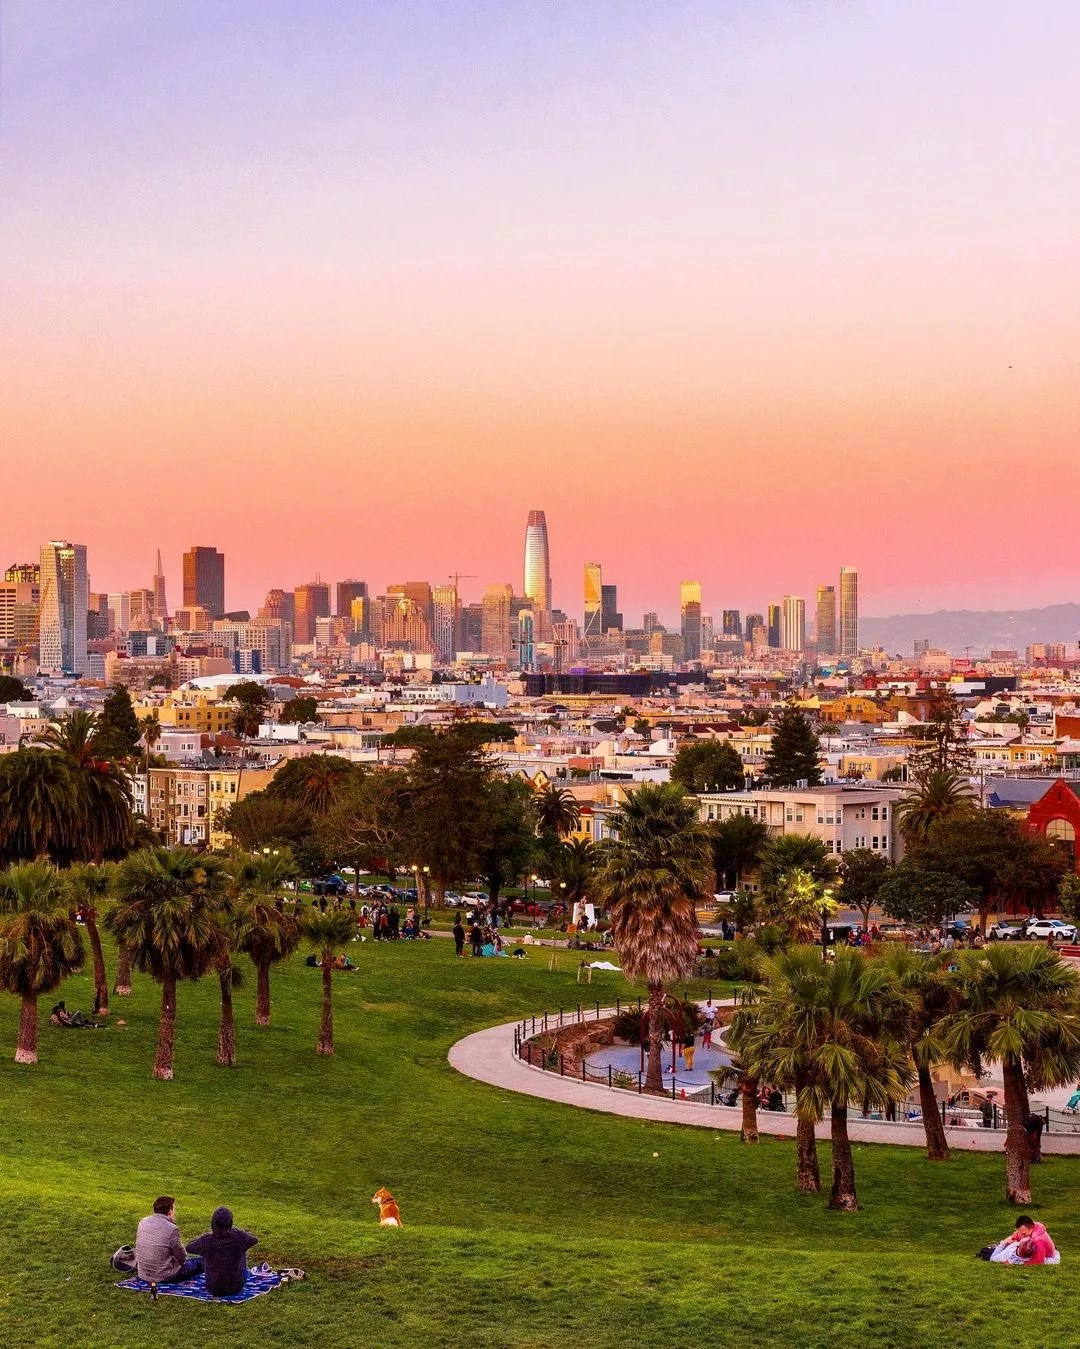 Skyline of San Francisco at sunset shot from Dolores Park. Photo by Instagram User @the415guy